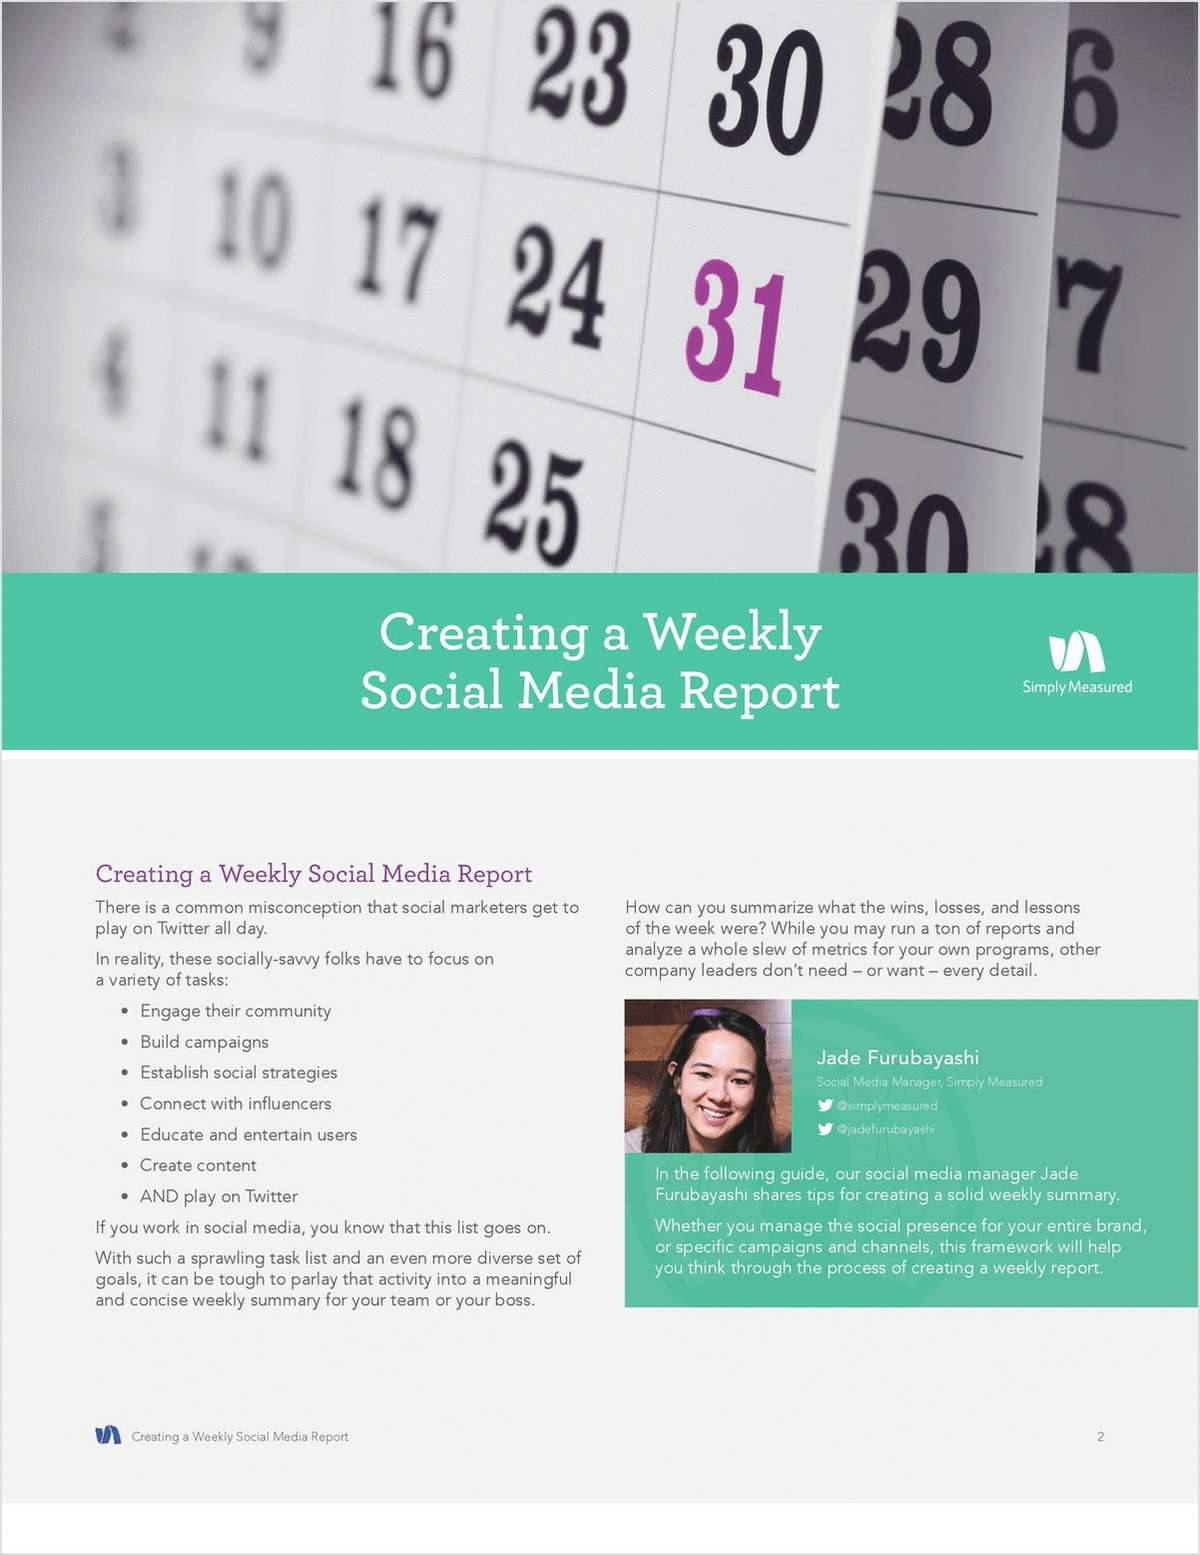 6 Quick Tips for Meaningful Social Media Reporting